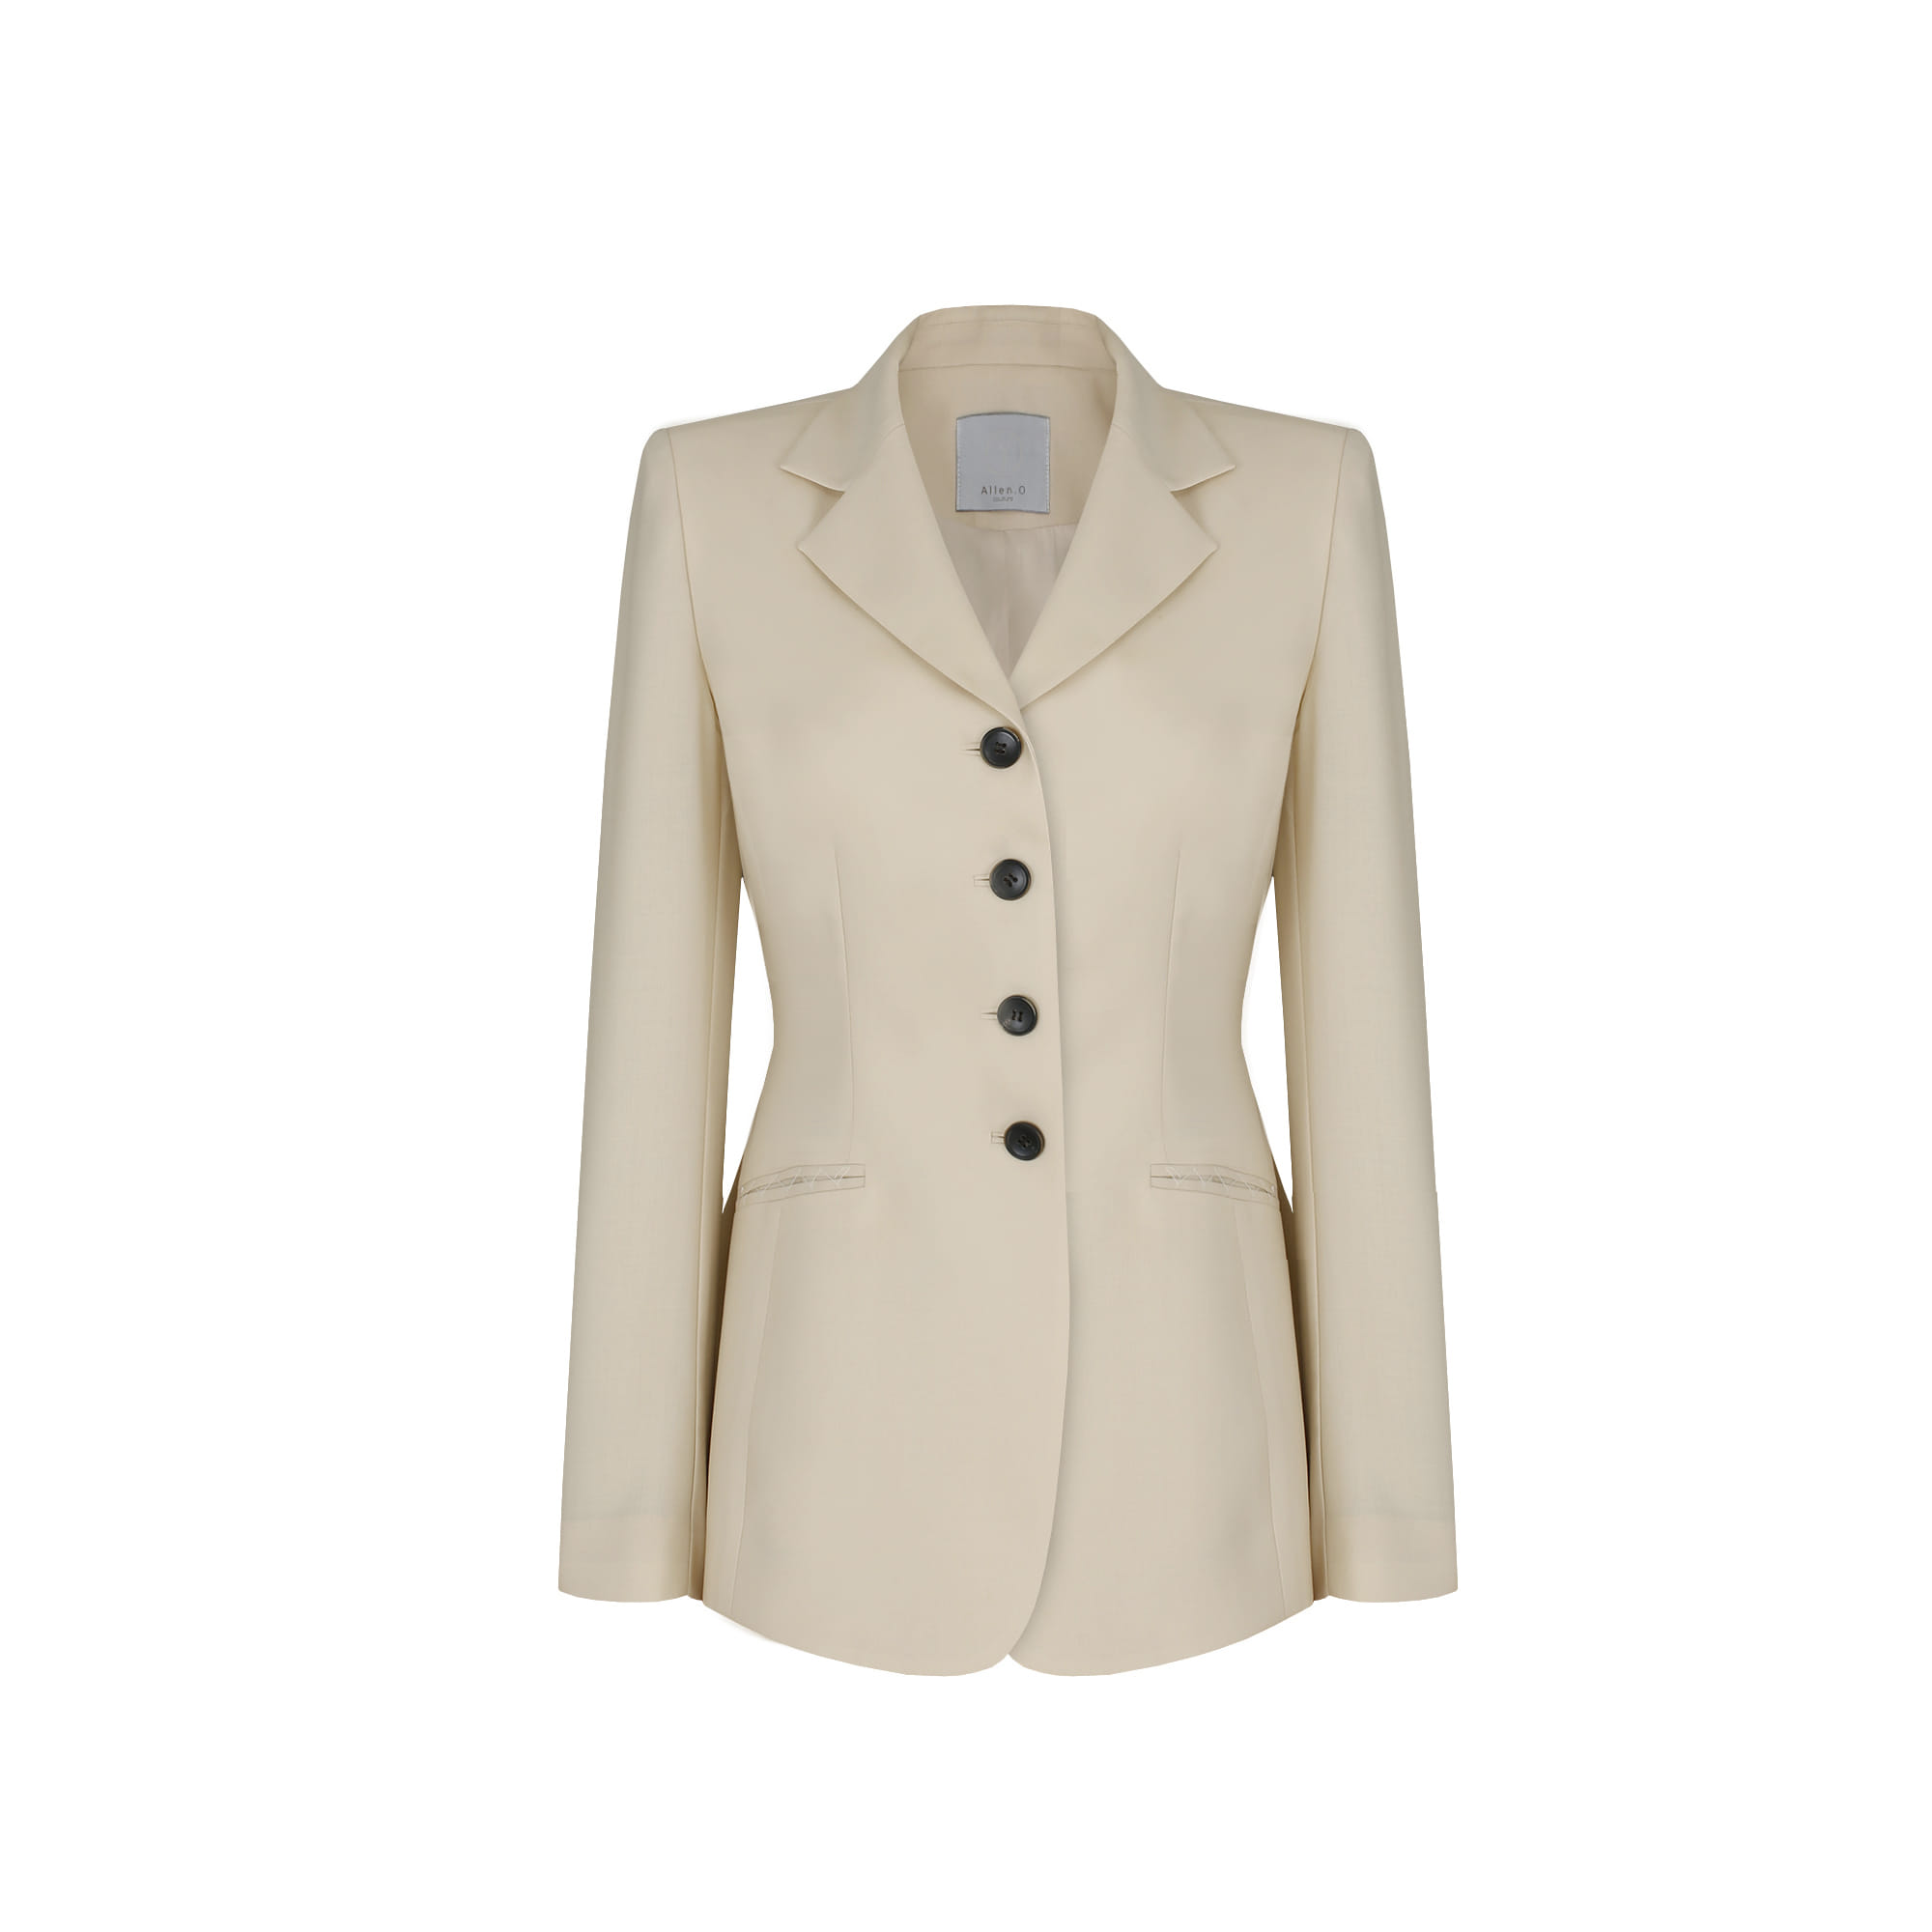 4-button Jacket       (vanilla Beige)